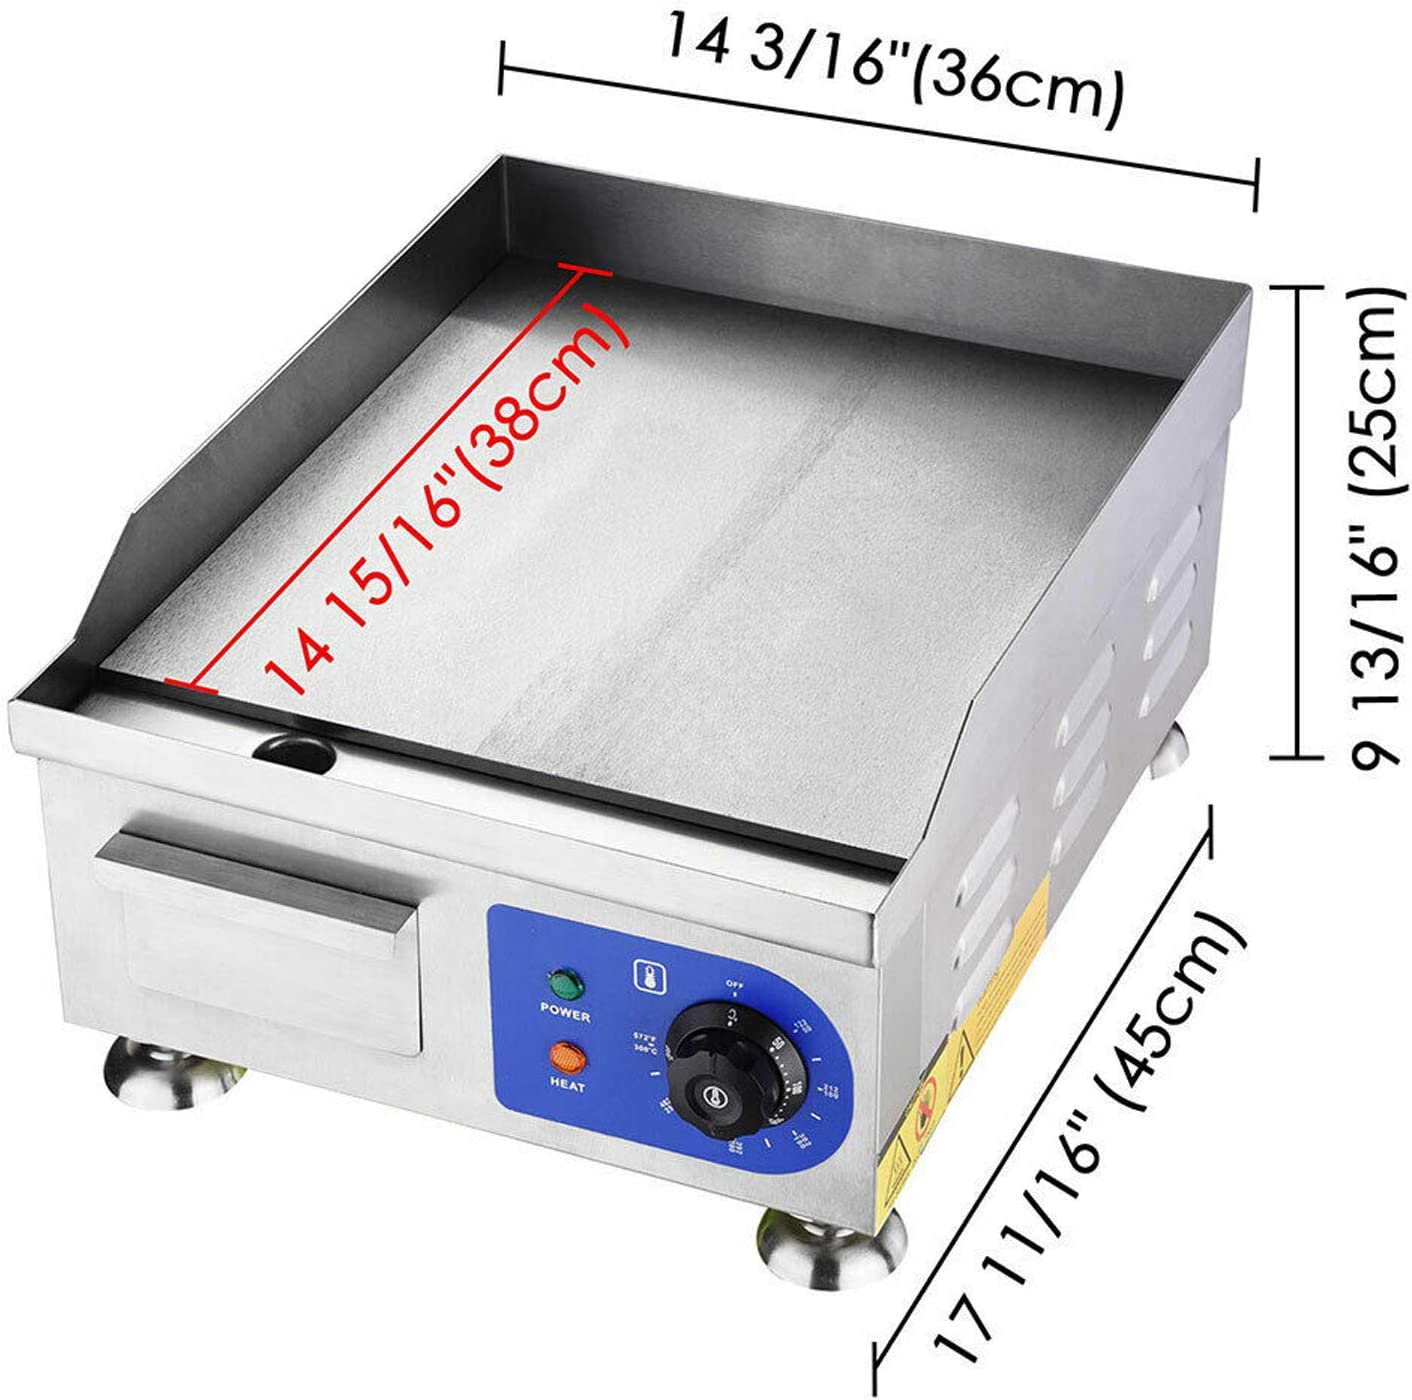 ALDKitchen Electric Countertop Griddle Stainless Steel Adjustable Temp Control Commercial Restaurant Grill Plaine